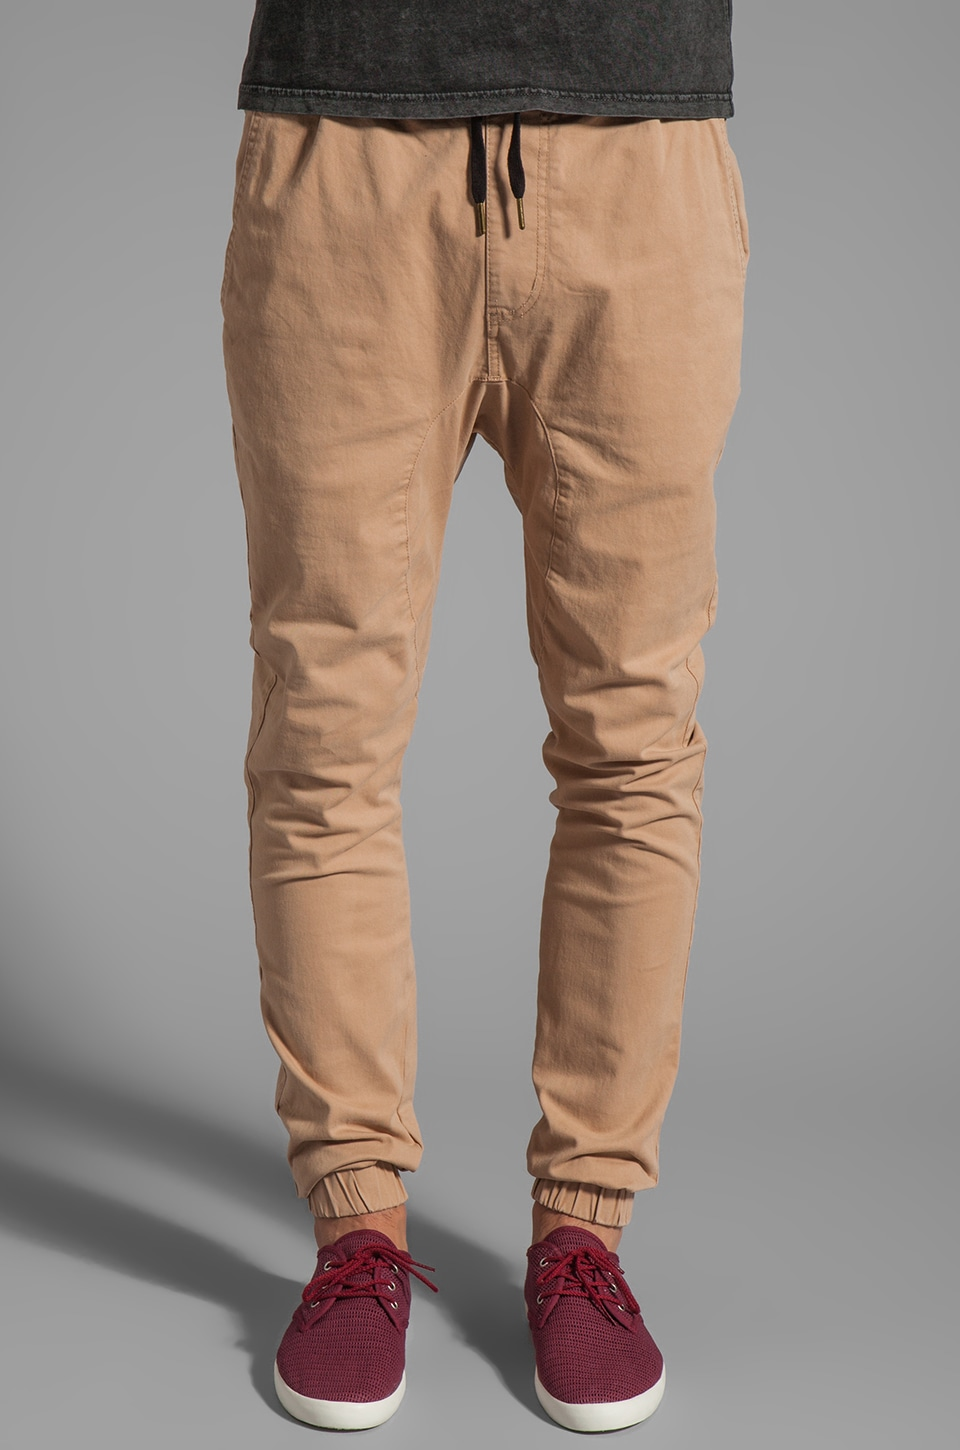 Zanerobe Sureshot Chino in Paprika